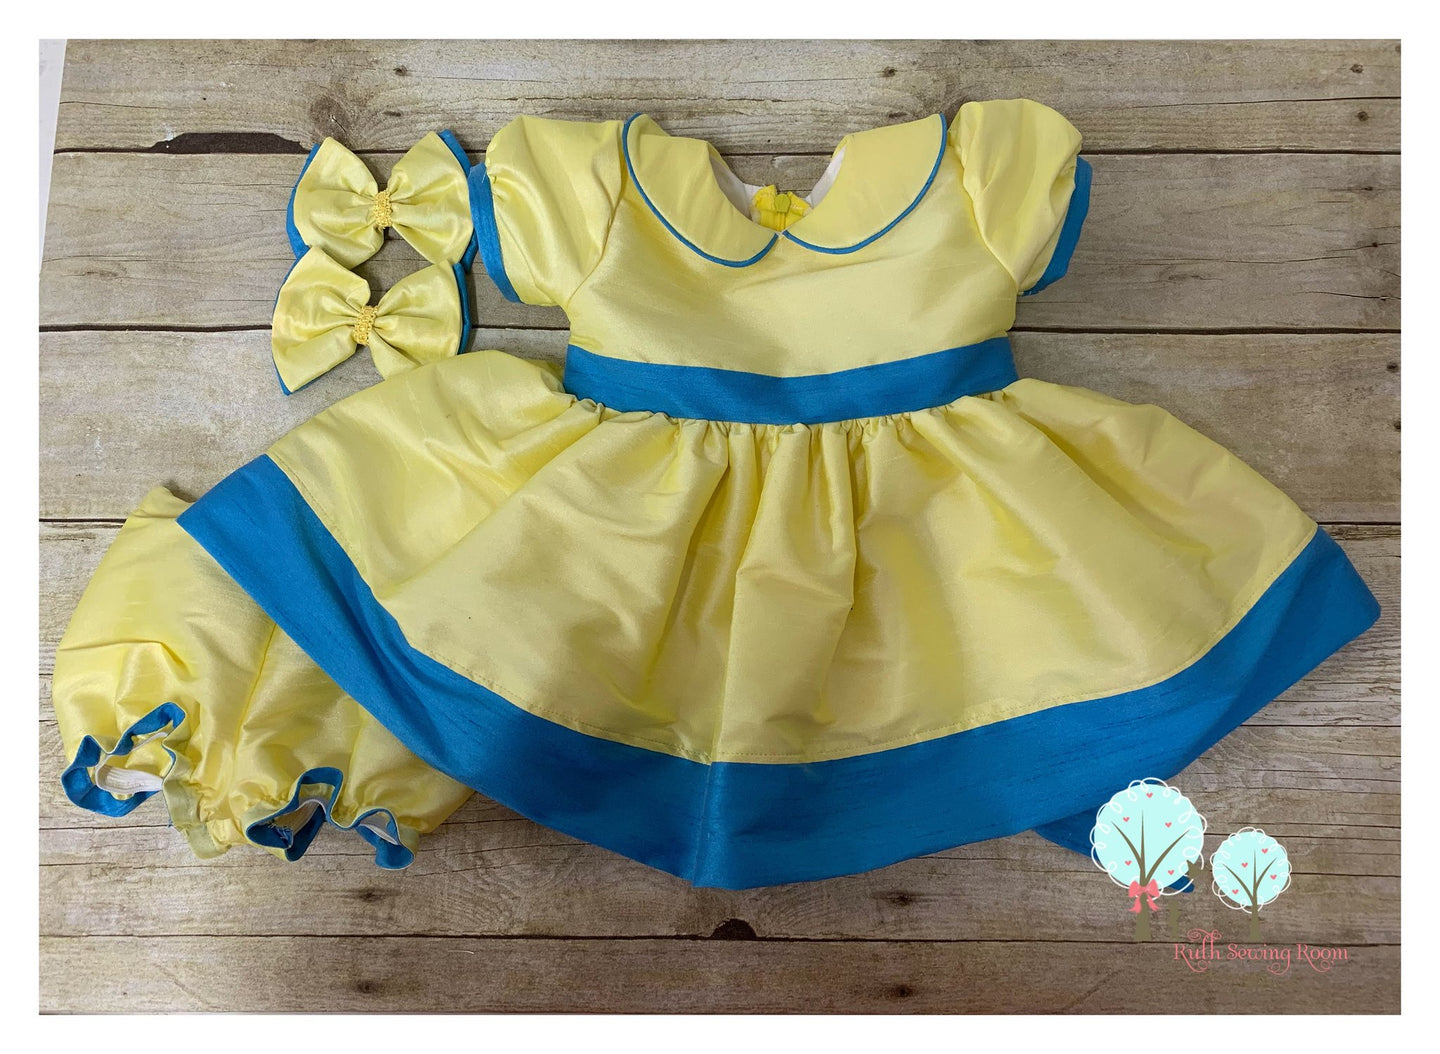 Beauty - Sunday Best - Poly Silk Dupioni  Lemon/Maize  - Wedding Flower Girl - Easter - Tea Party Dress - Birthday Party Dress - Princess